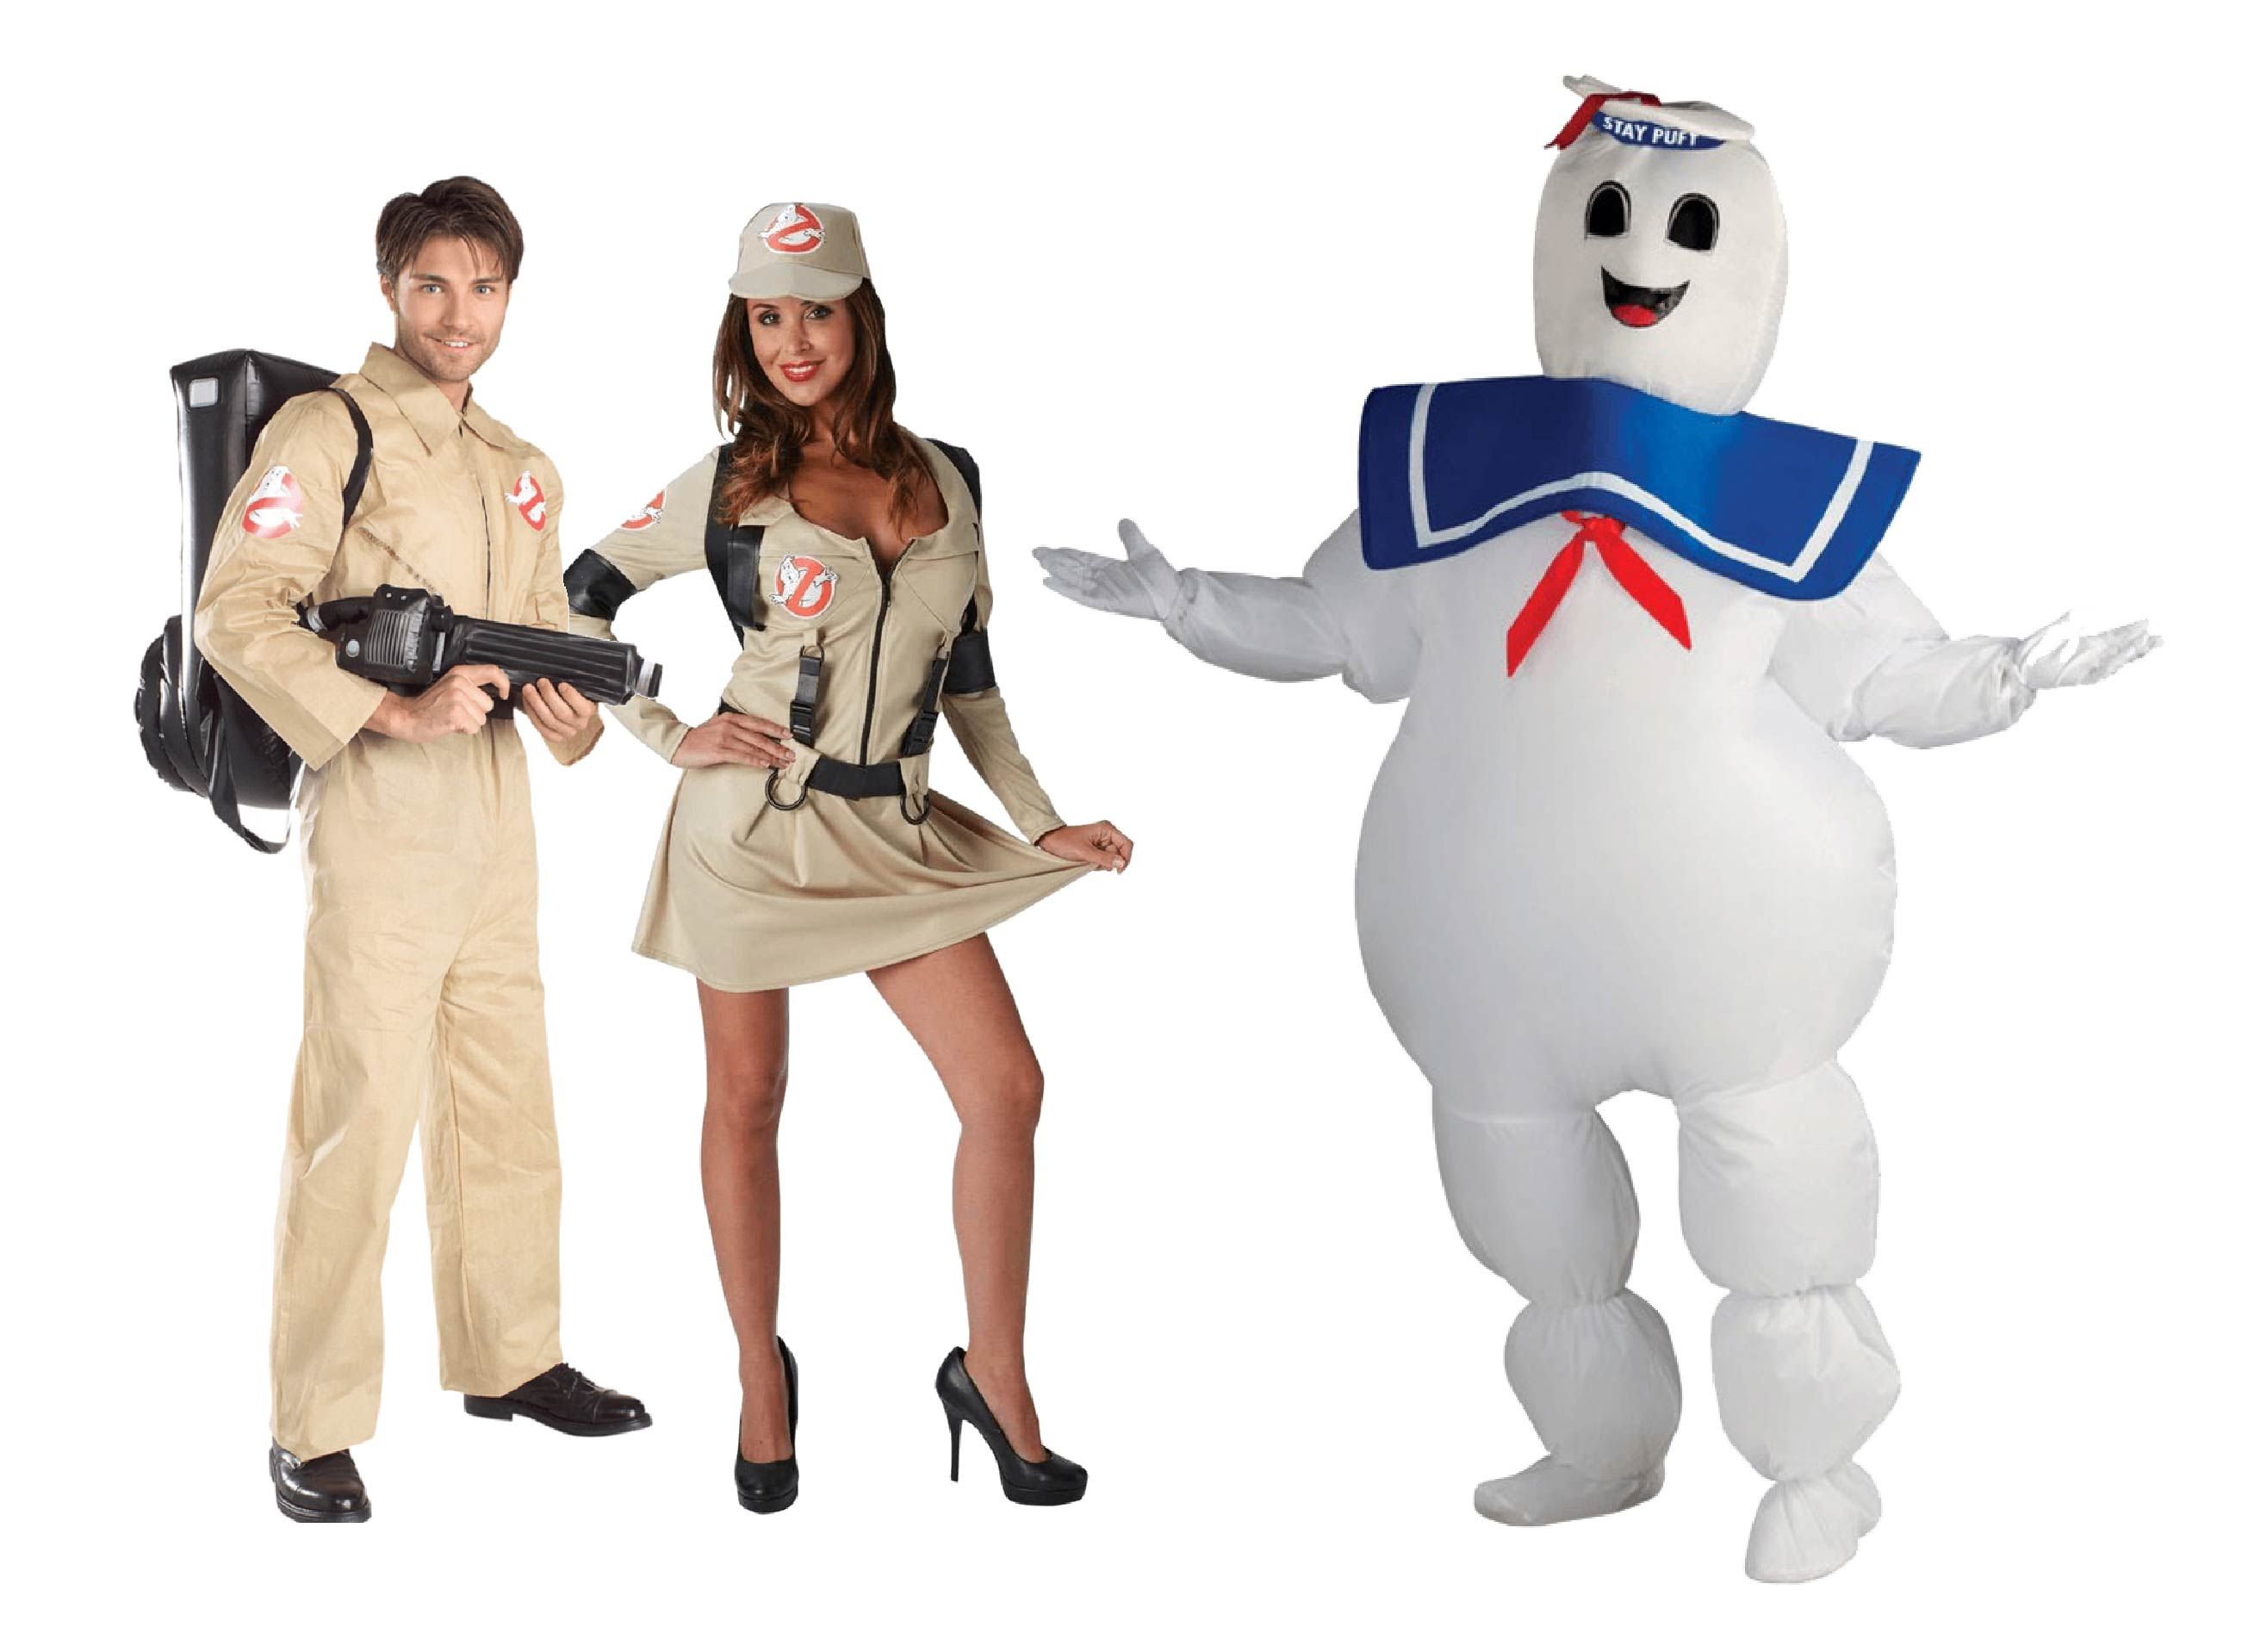 A group of people wearing Ghostbusters costumes for men and women including the Stay Puft marshmallow man.